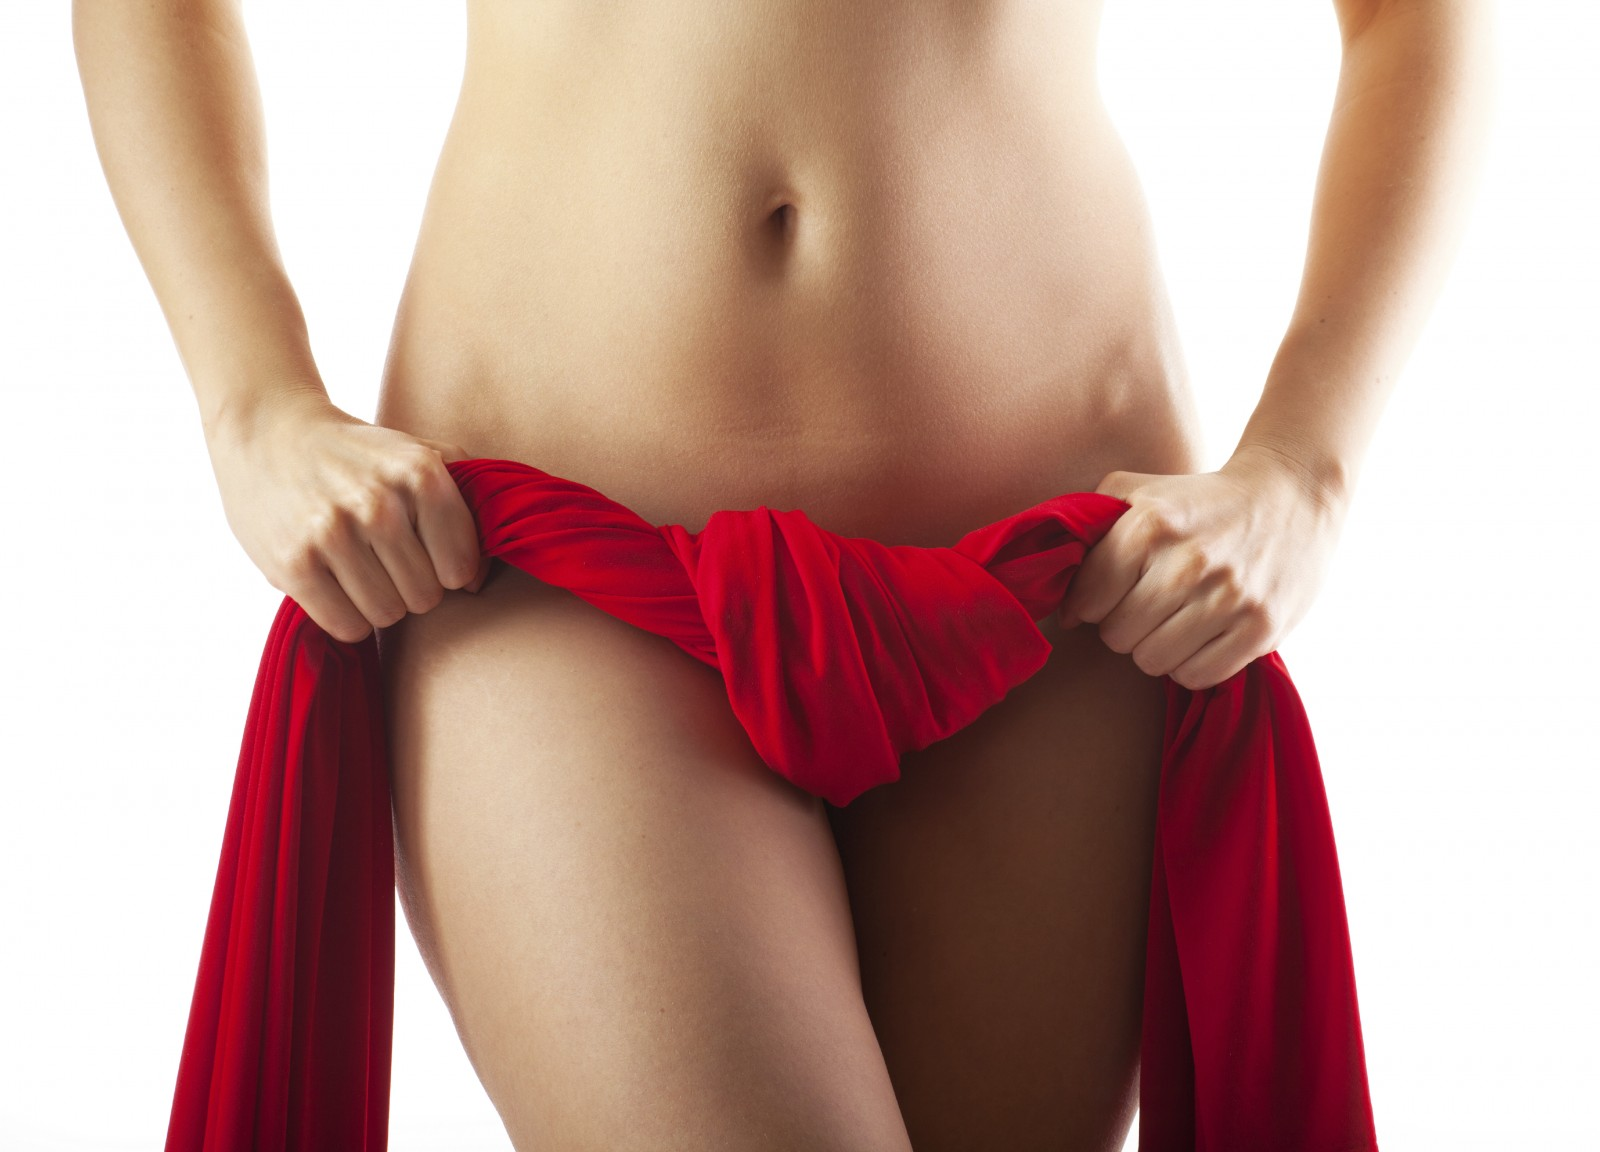 Truths and Myths of Vaginal Tightening Creams